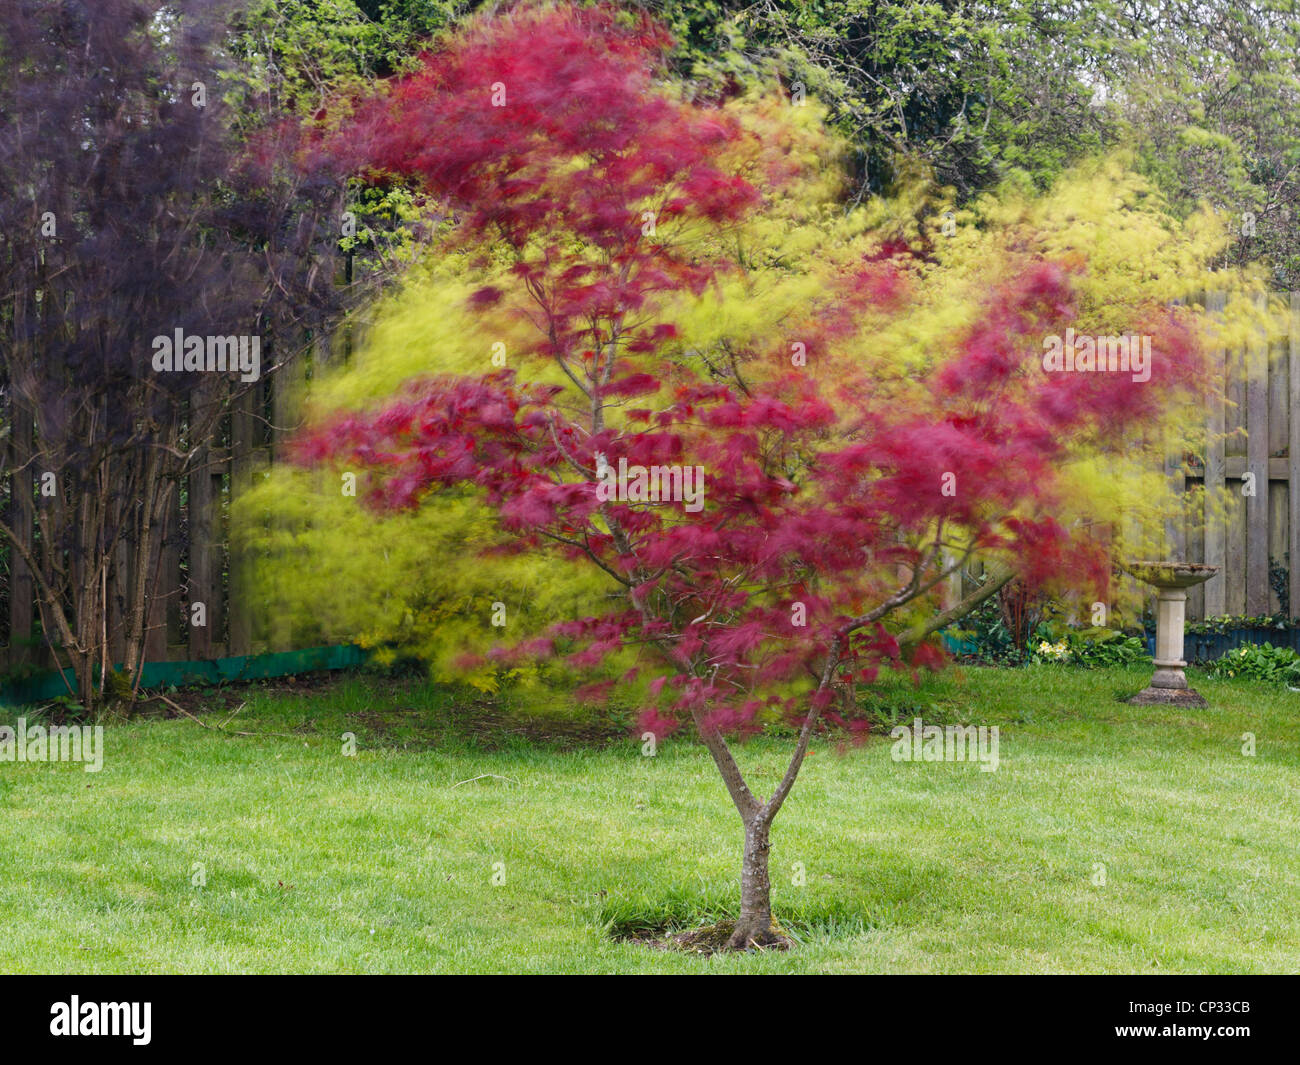 Blurred Leaves Of Red Japanese Maple Tree Acer Palmatum Stock Photo